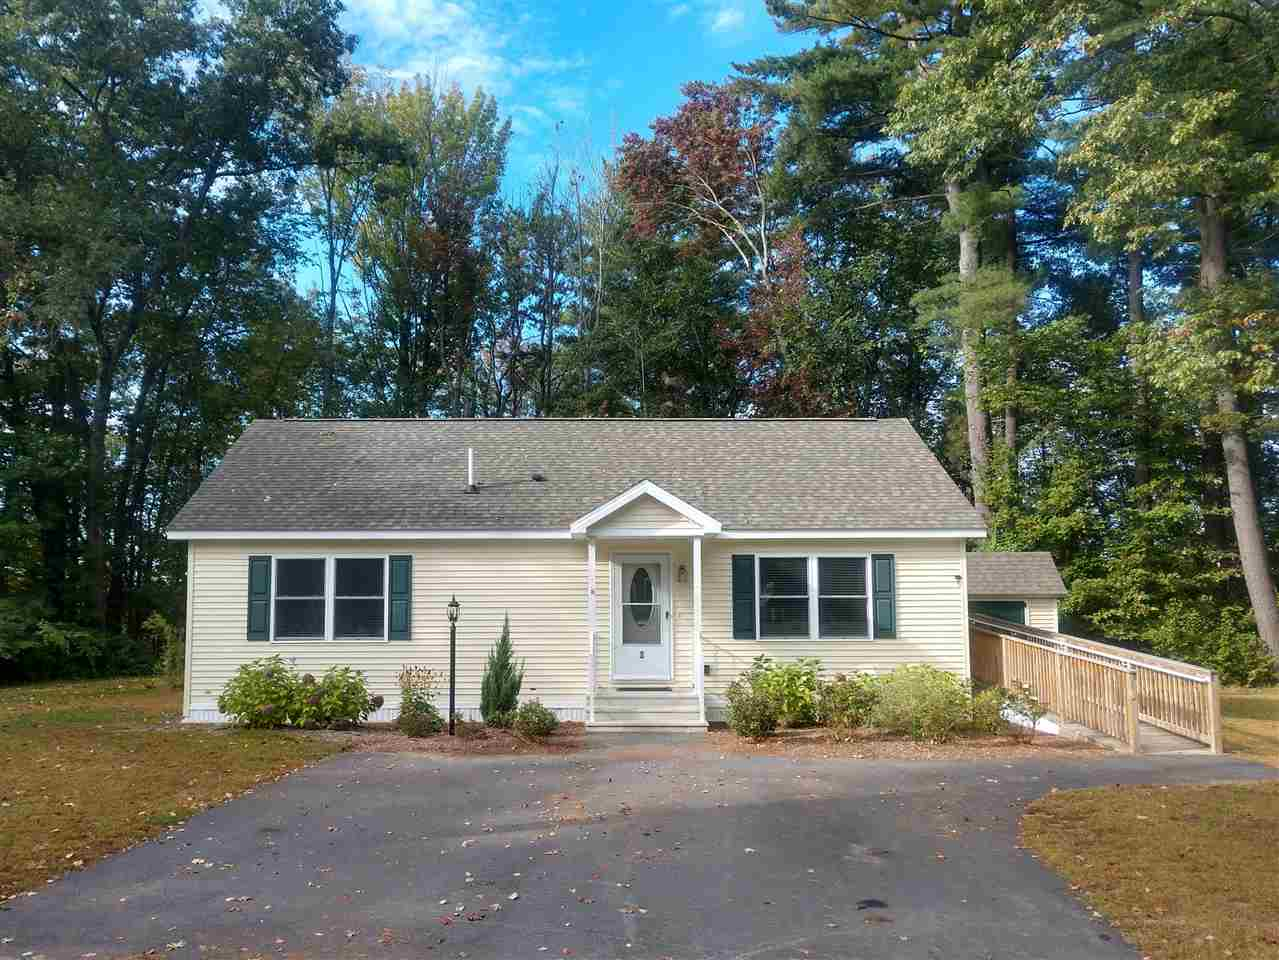 MLS 4781527: 6 Overlook Trail, Concord NH